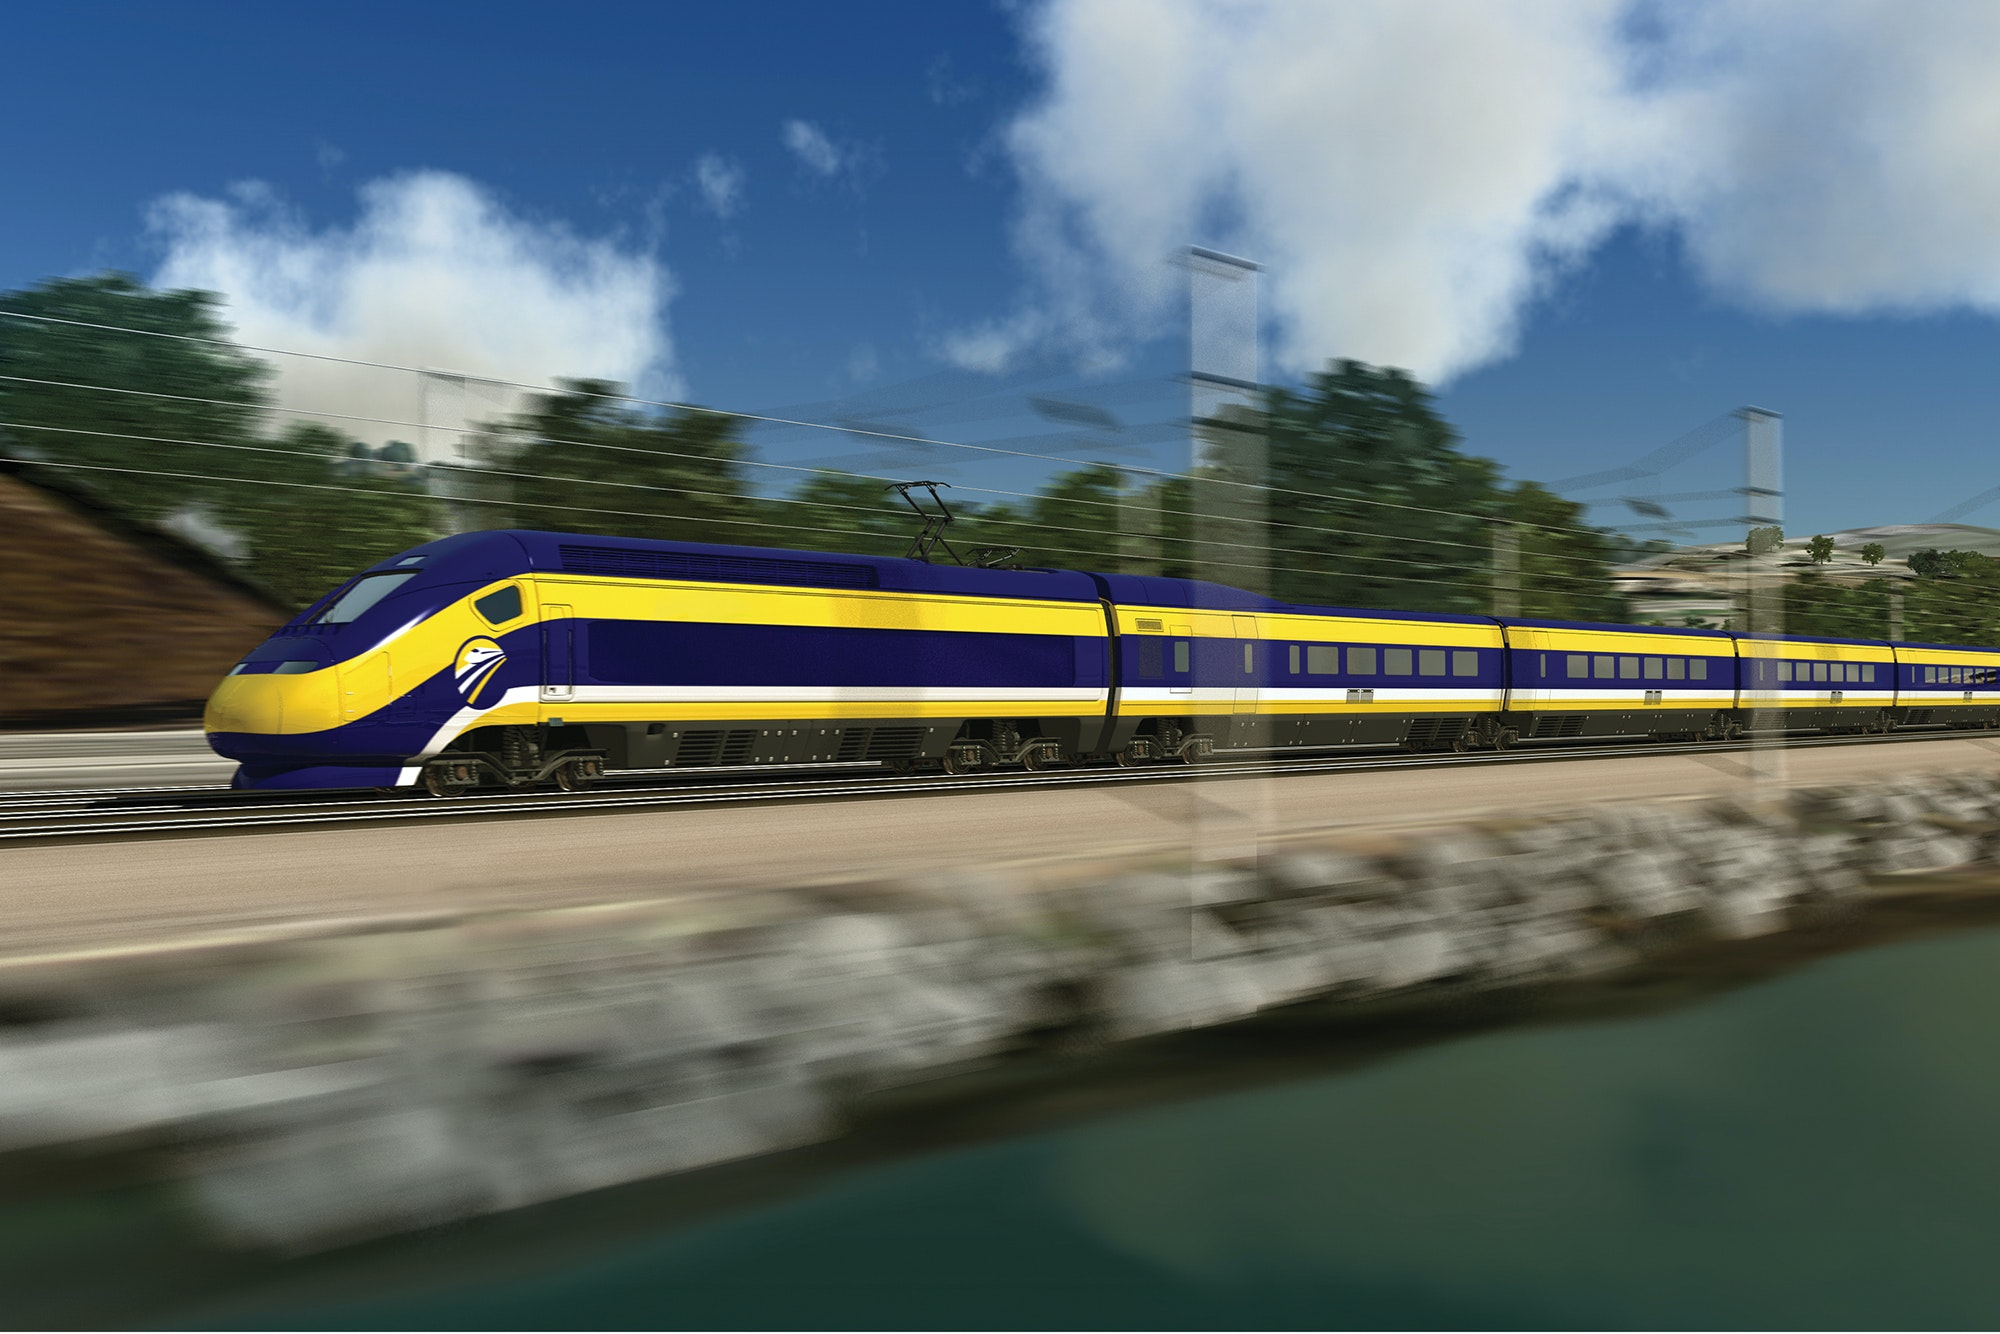 The California high-speed rail route between San Francisco and Los Angeles was cancelled in 2019 due to budget issues.